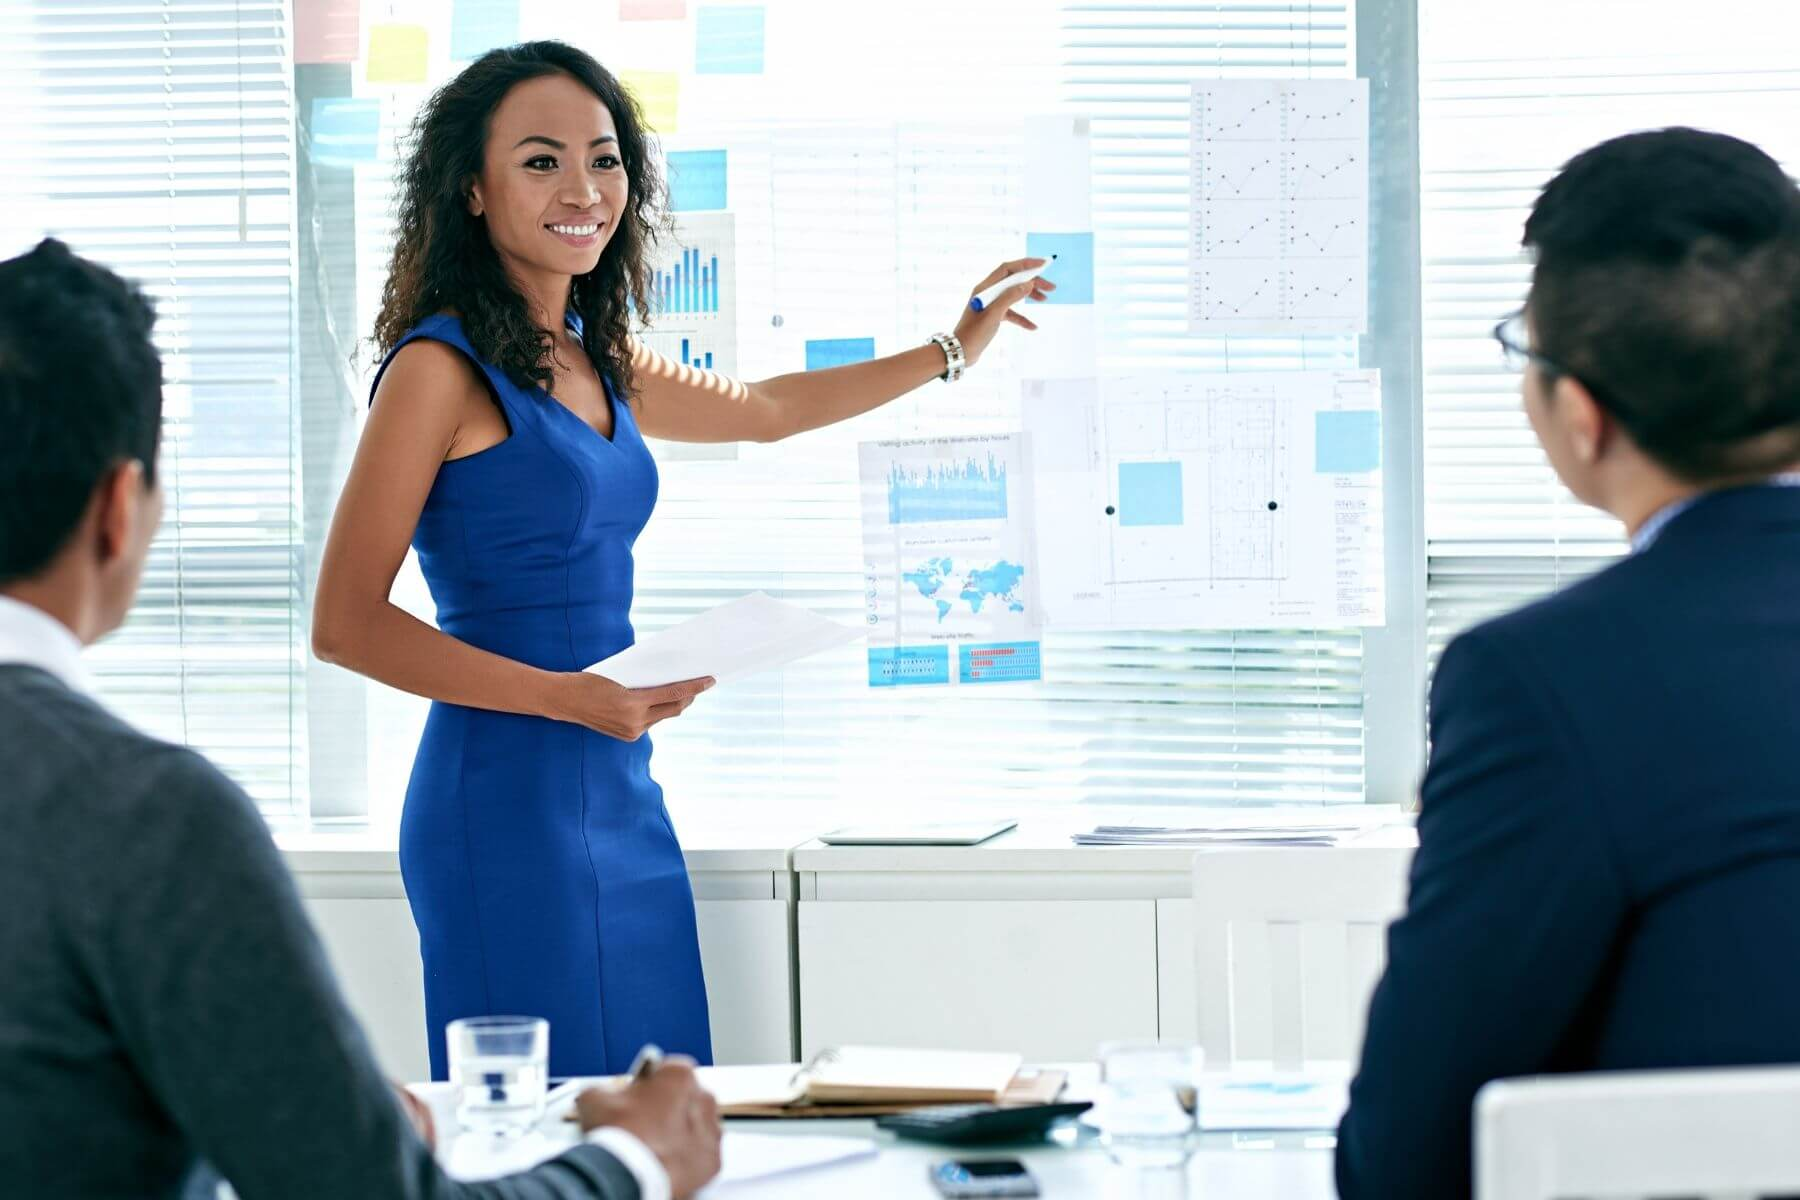 Female professional in blue dress smiling during as she presents in a corporate setting.